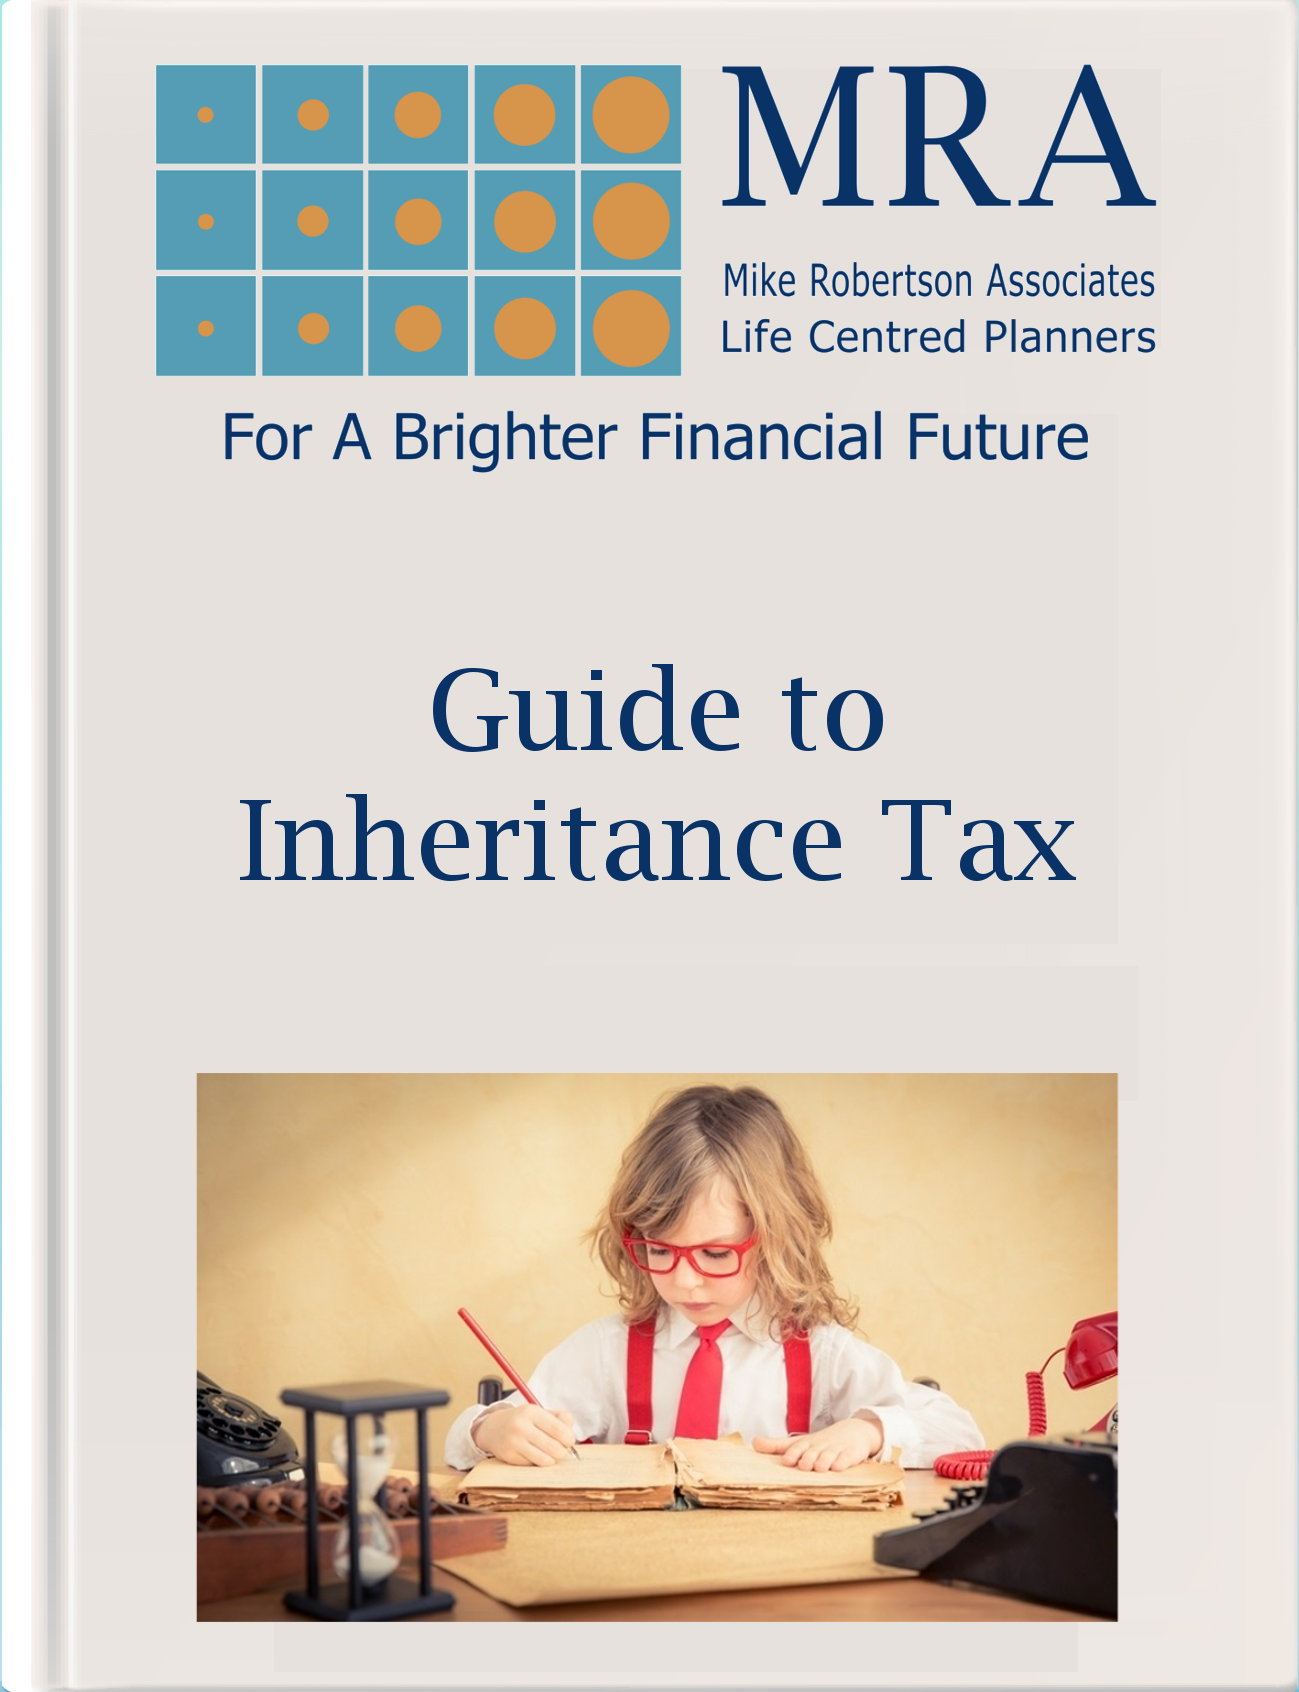 Download our Guide to Inheritance Tax